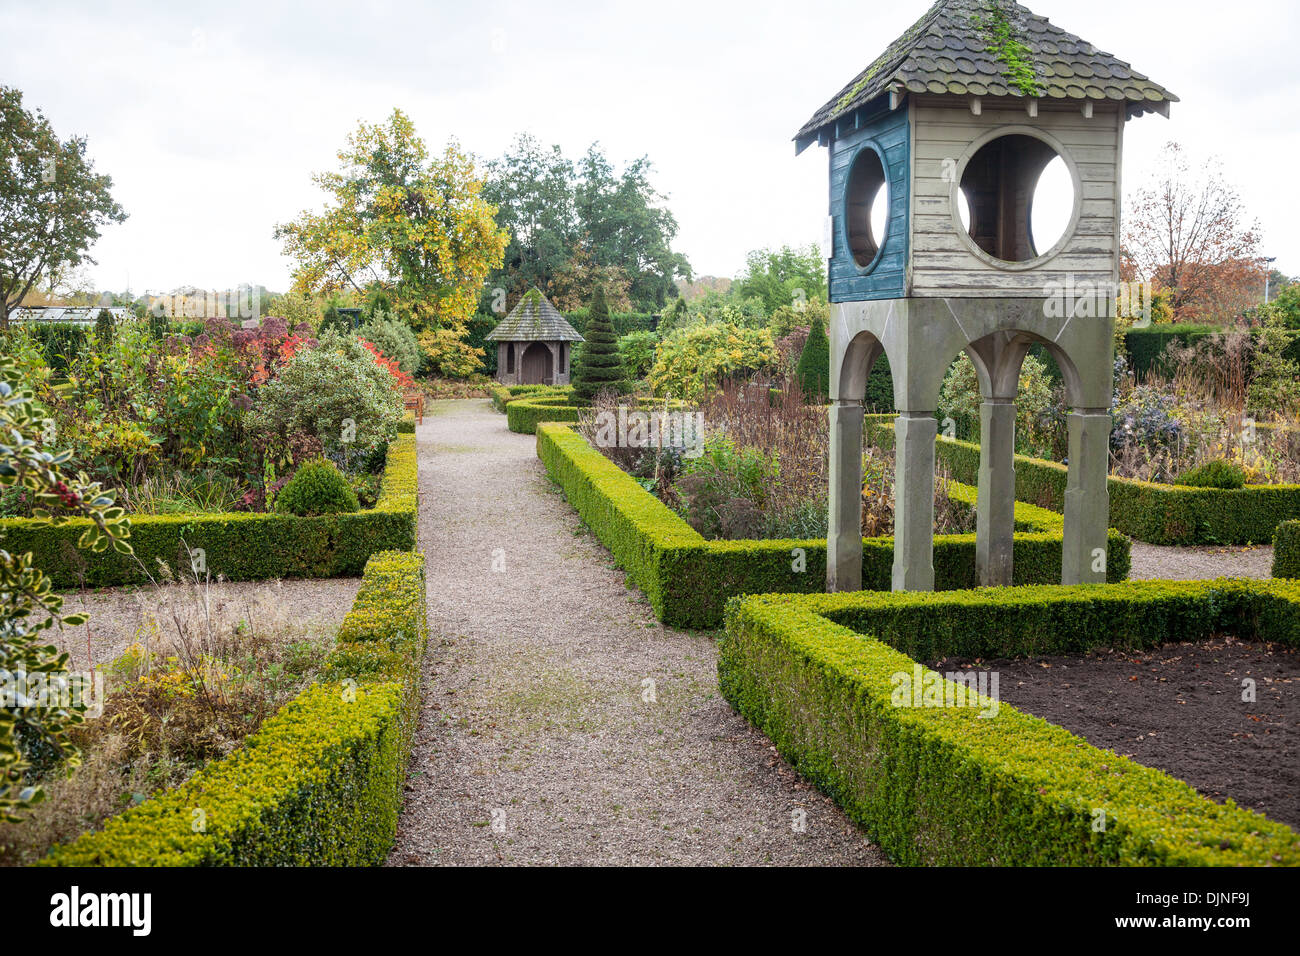 Box hedges and Yew trees in The gardens at Bridgemere Nursery and Garden World Cheshire England UK - Stock Image